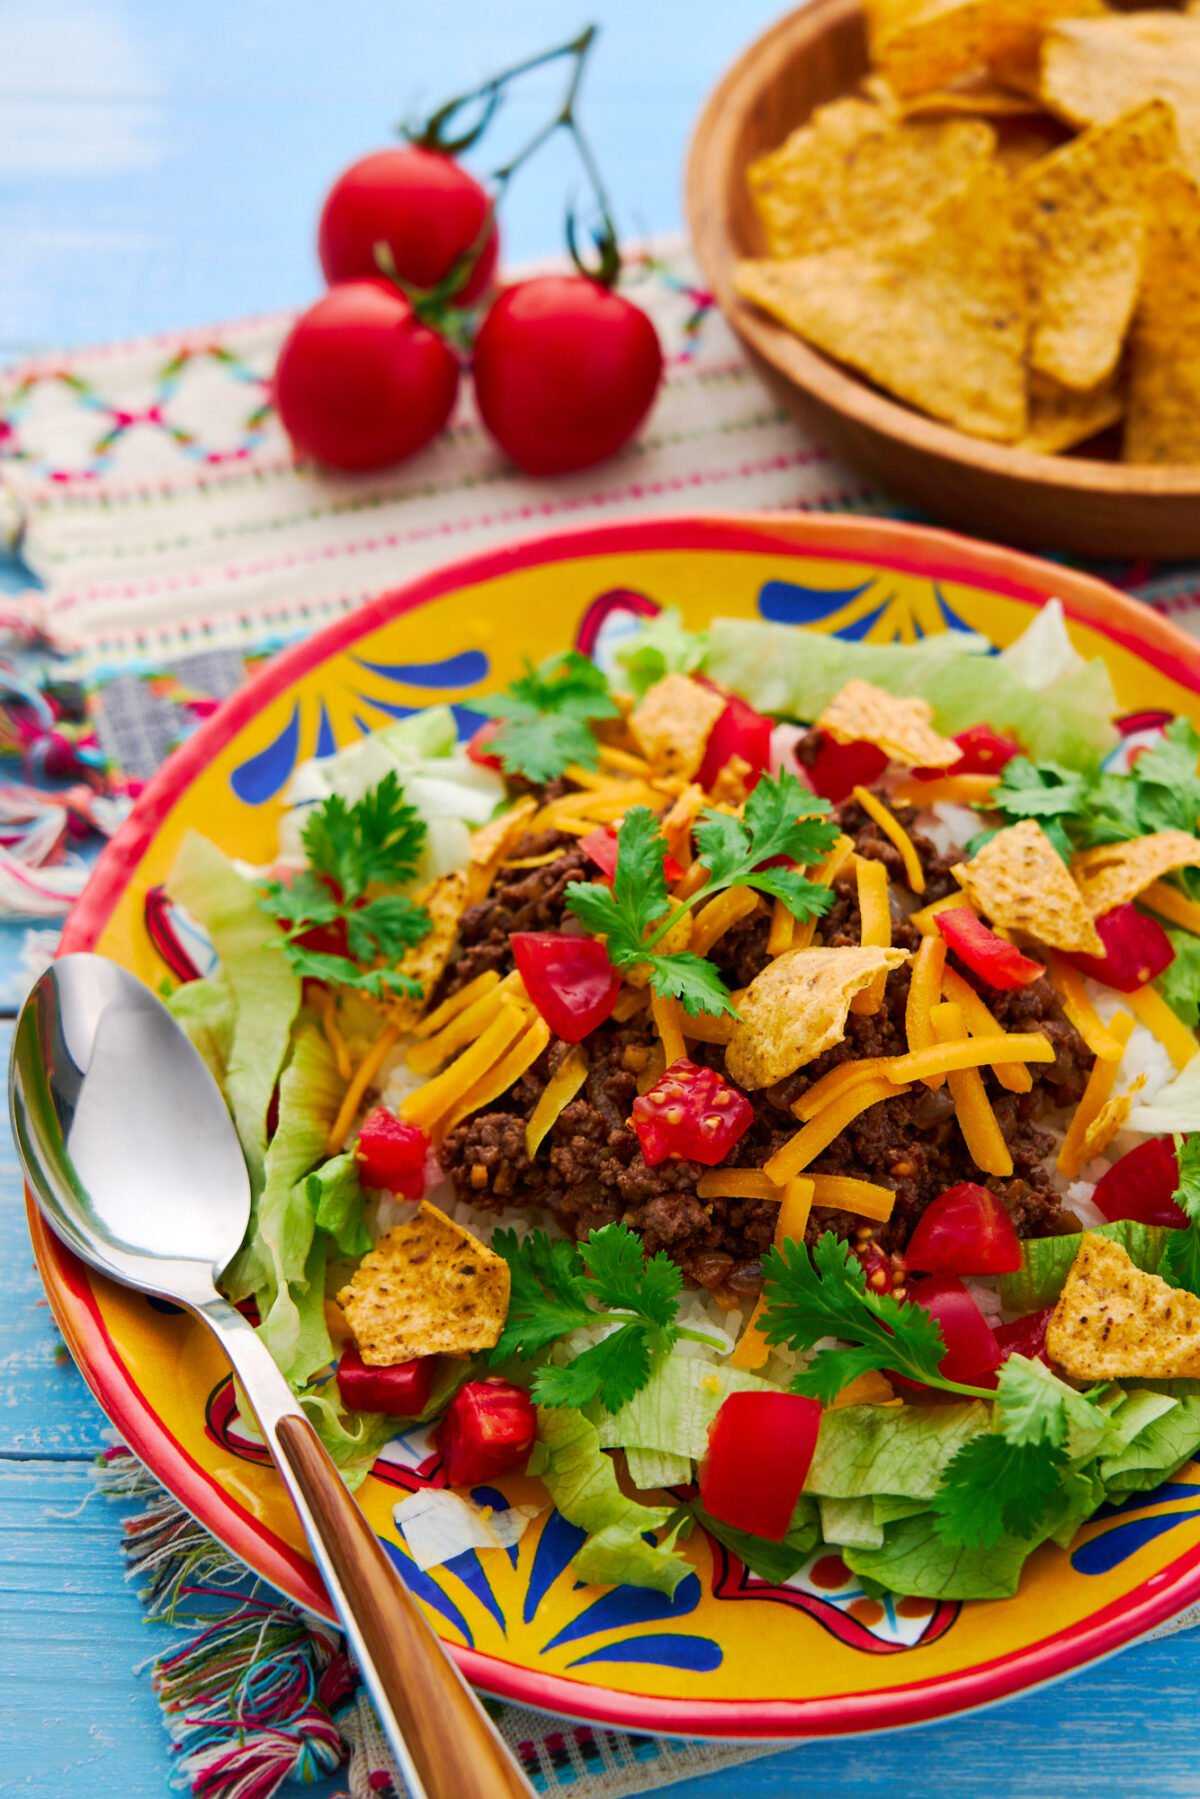 With vibrant layers of rice, taco meat, cheese, and veggies, taco rice, is an easy 1-plate meal that comes together in about 15 minutes.